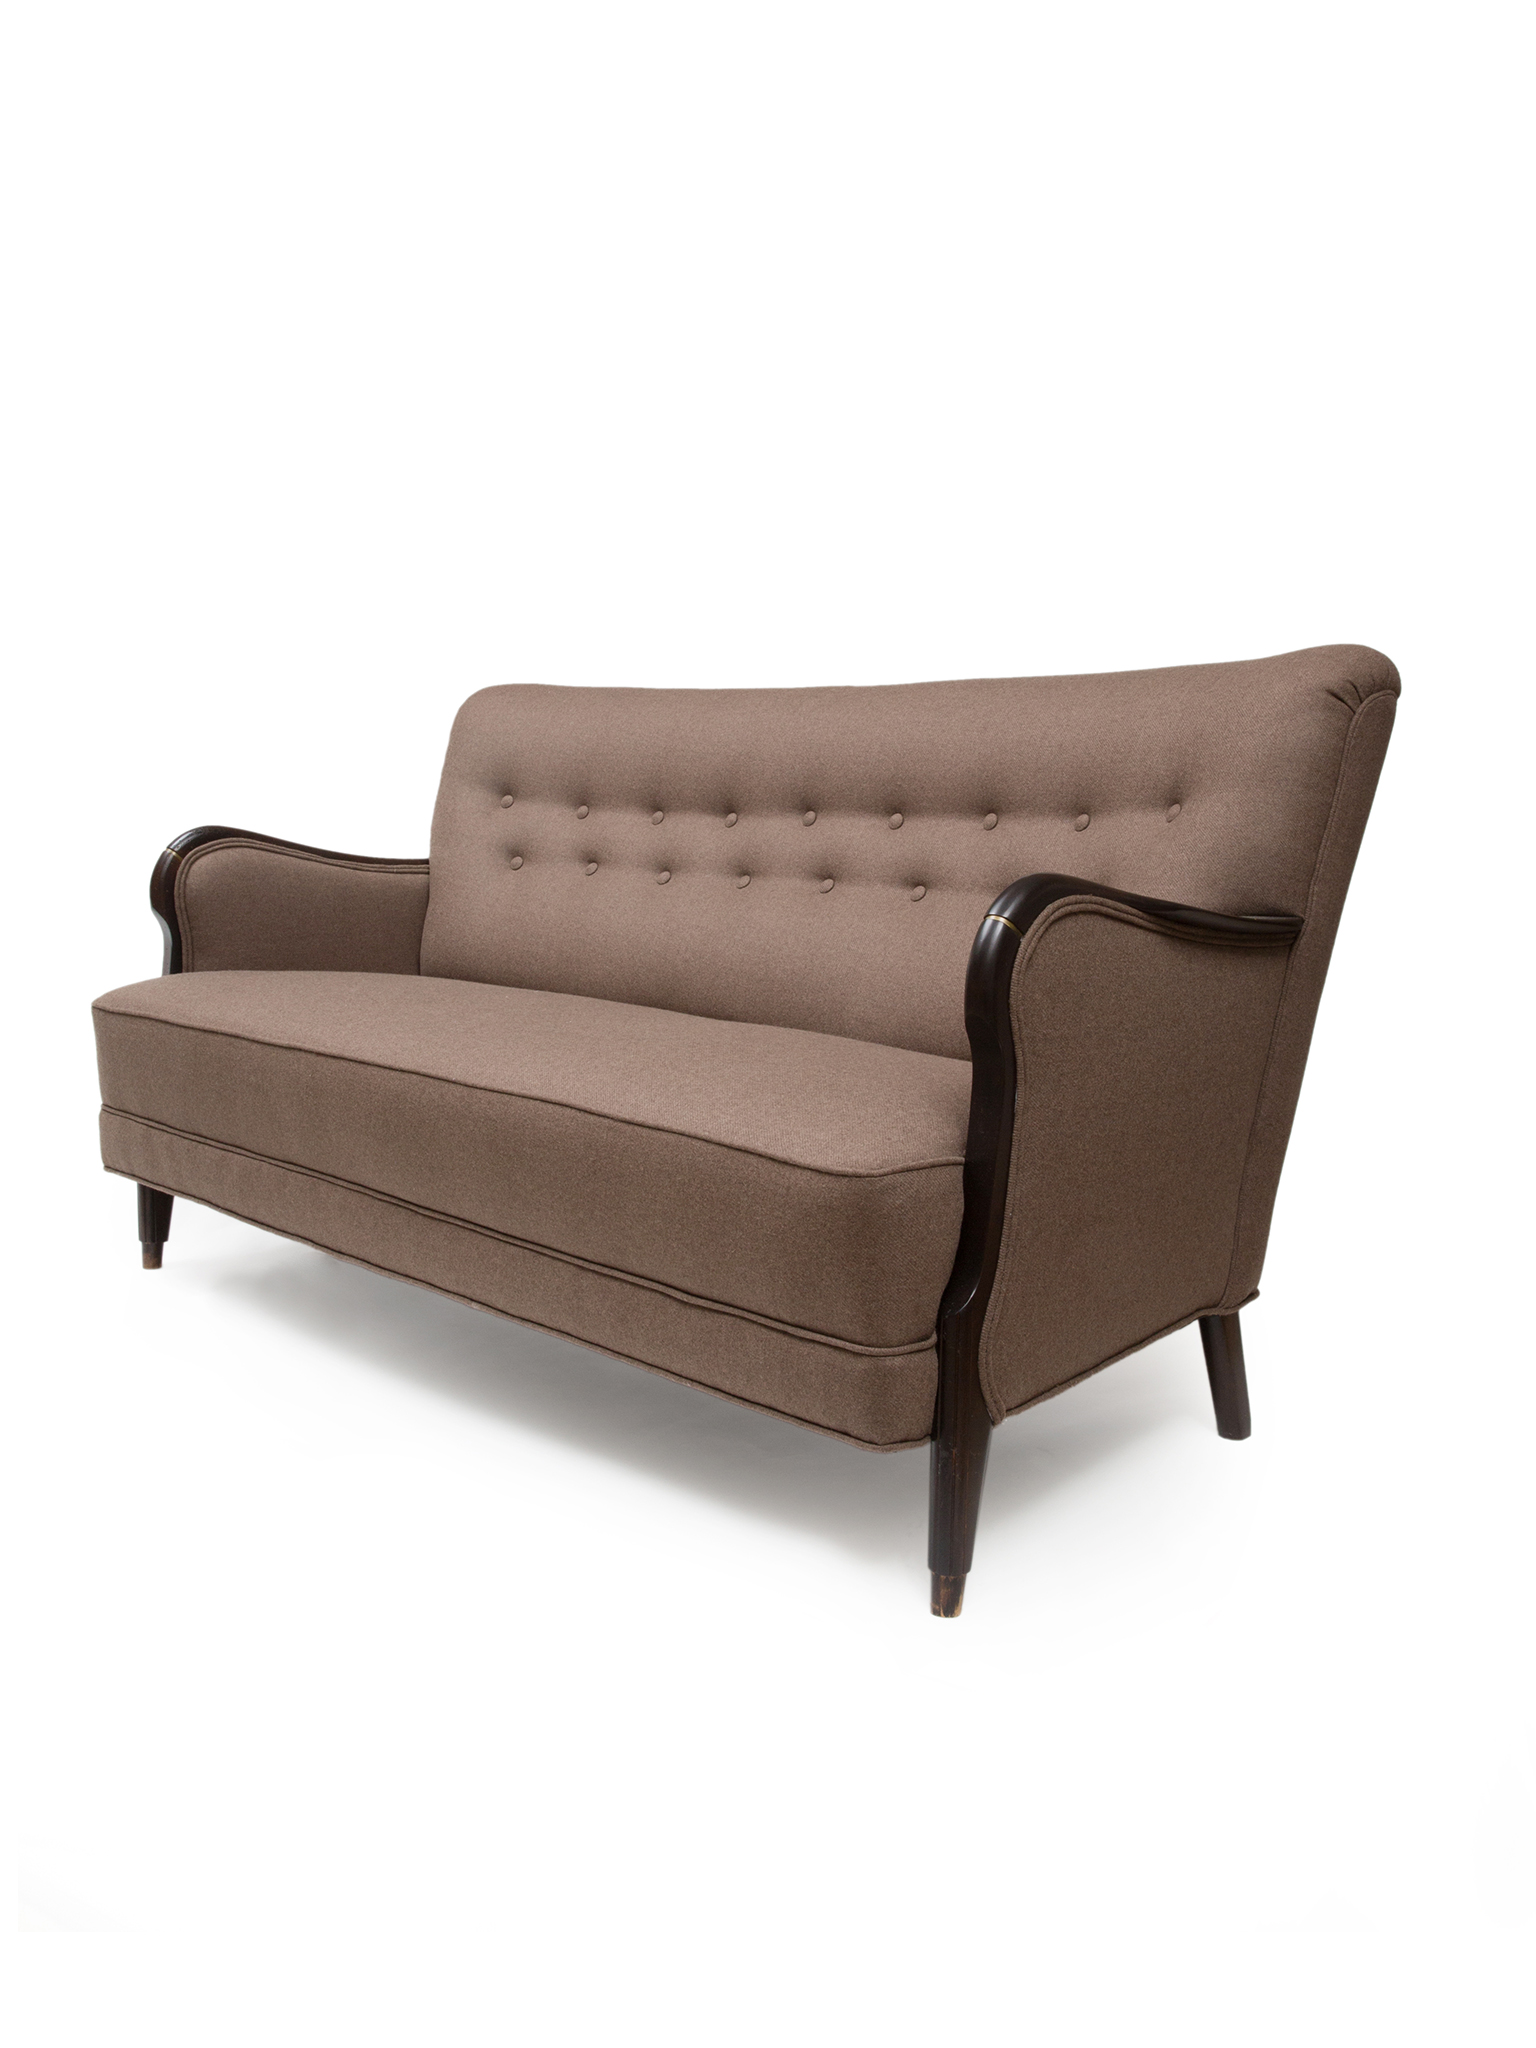 Bertram Sofa By Holland Amp Sherry